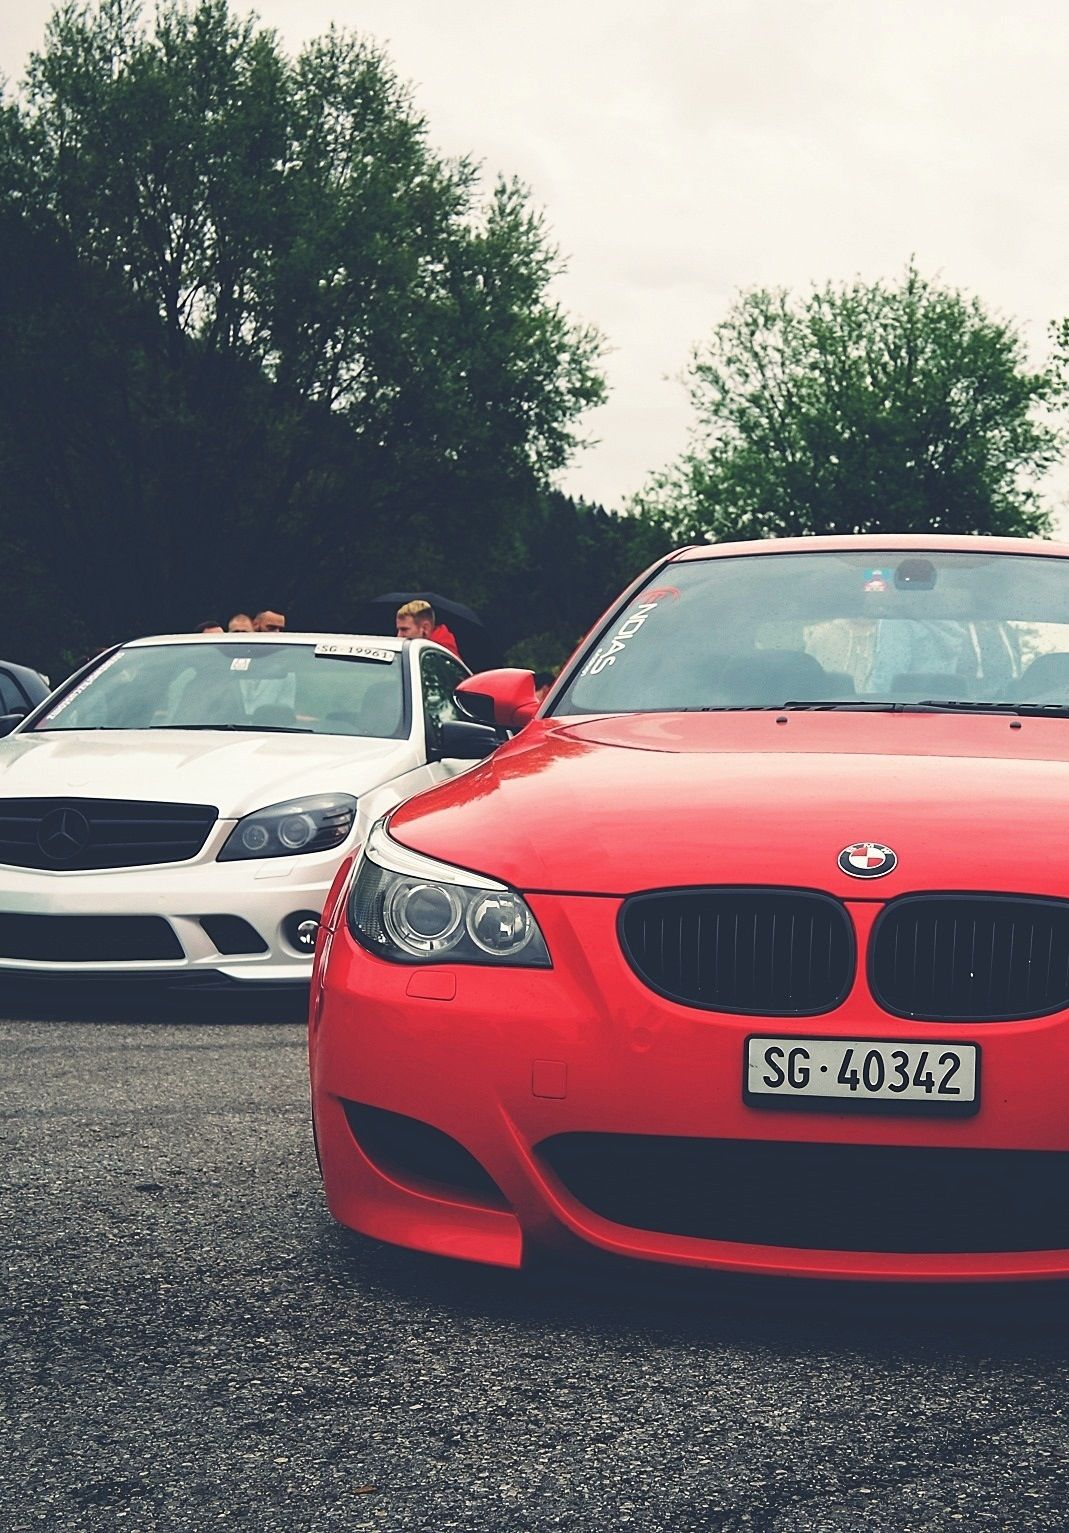 Mercedes C63 AMG BMW M3 Cars And Motorcycles